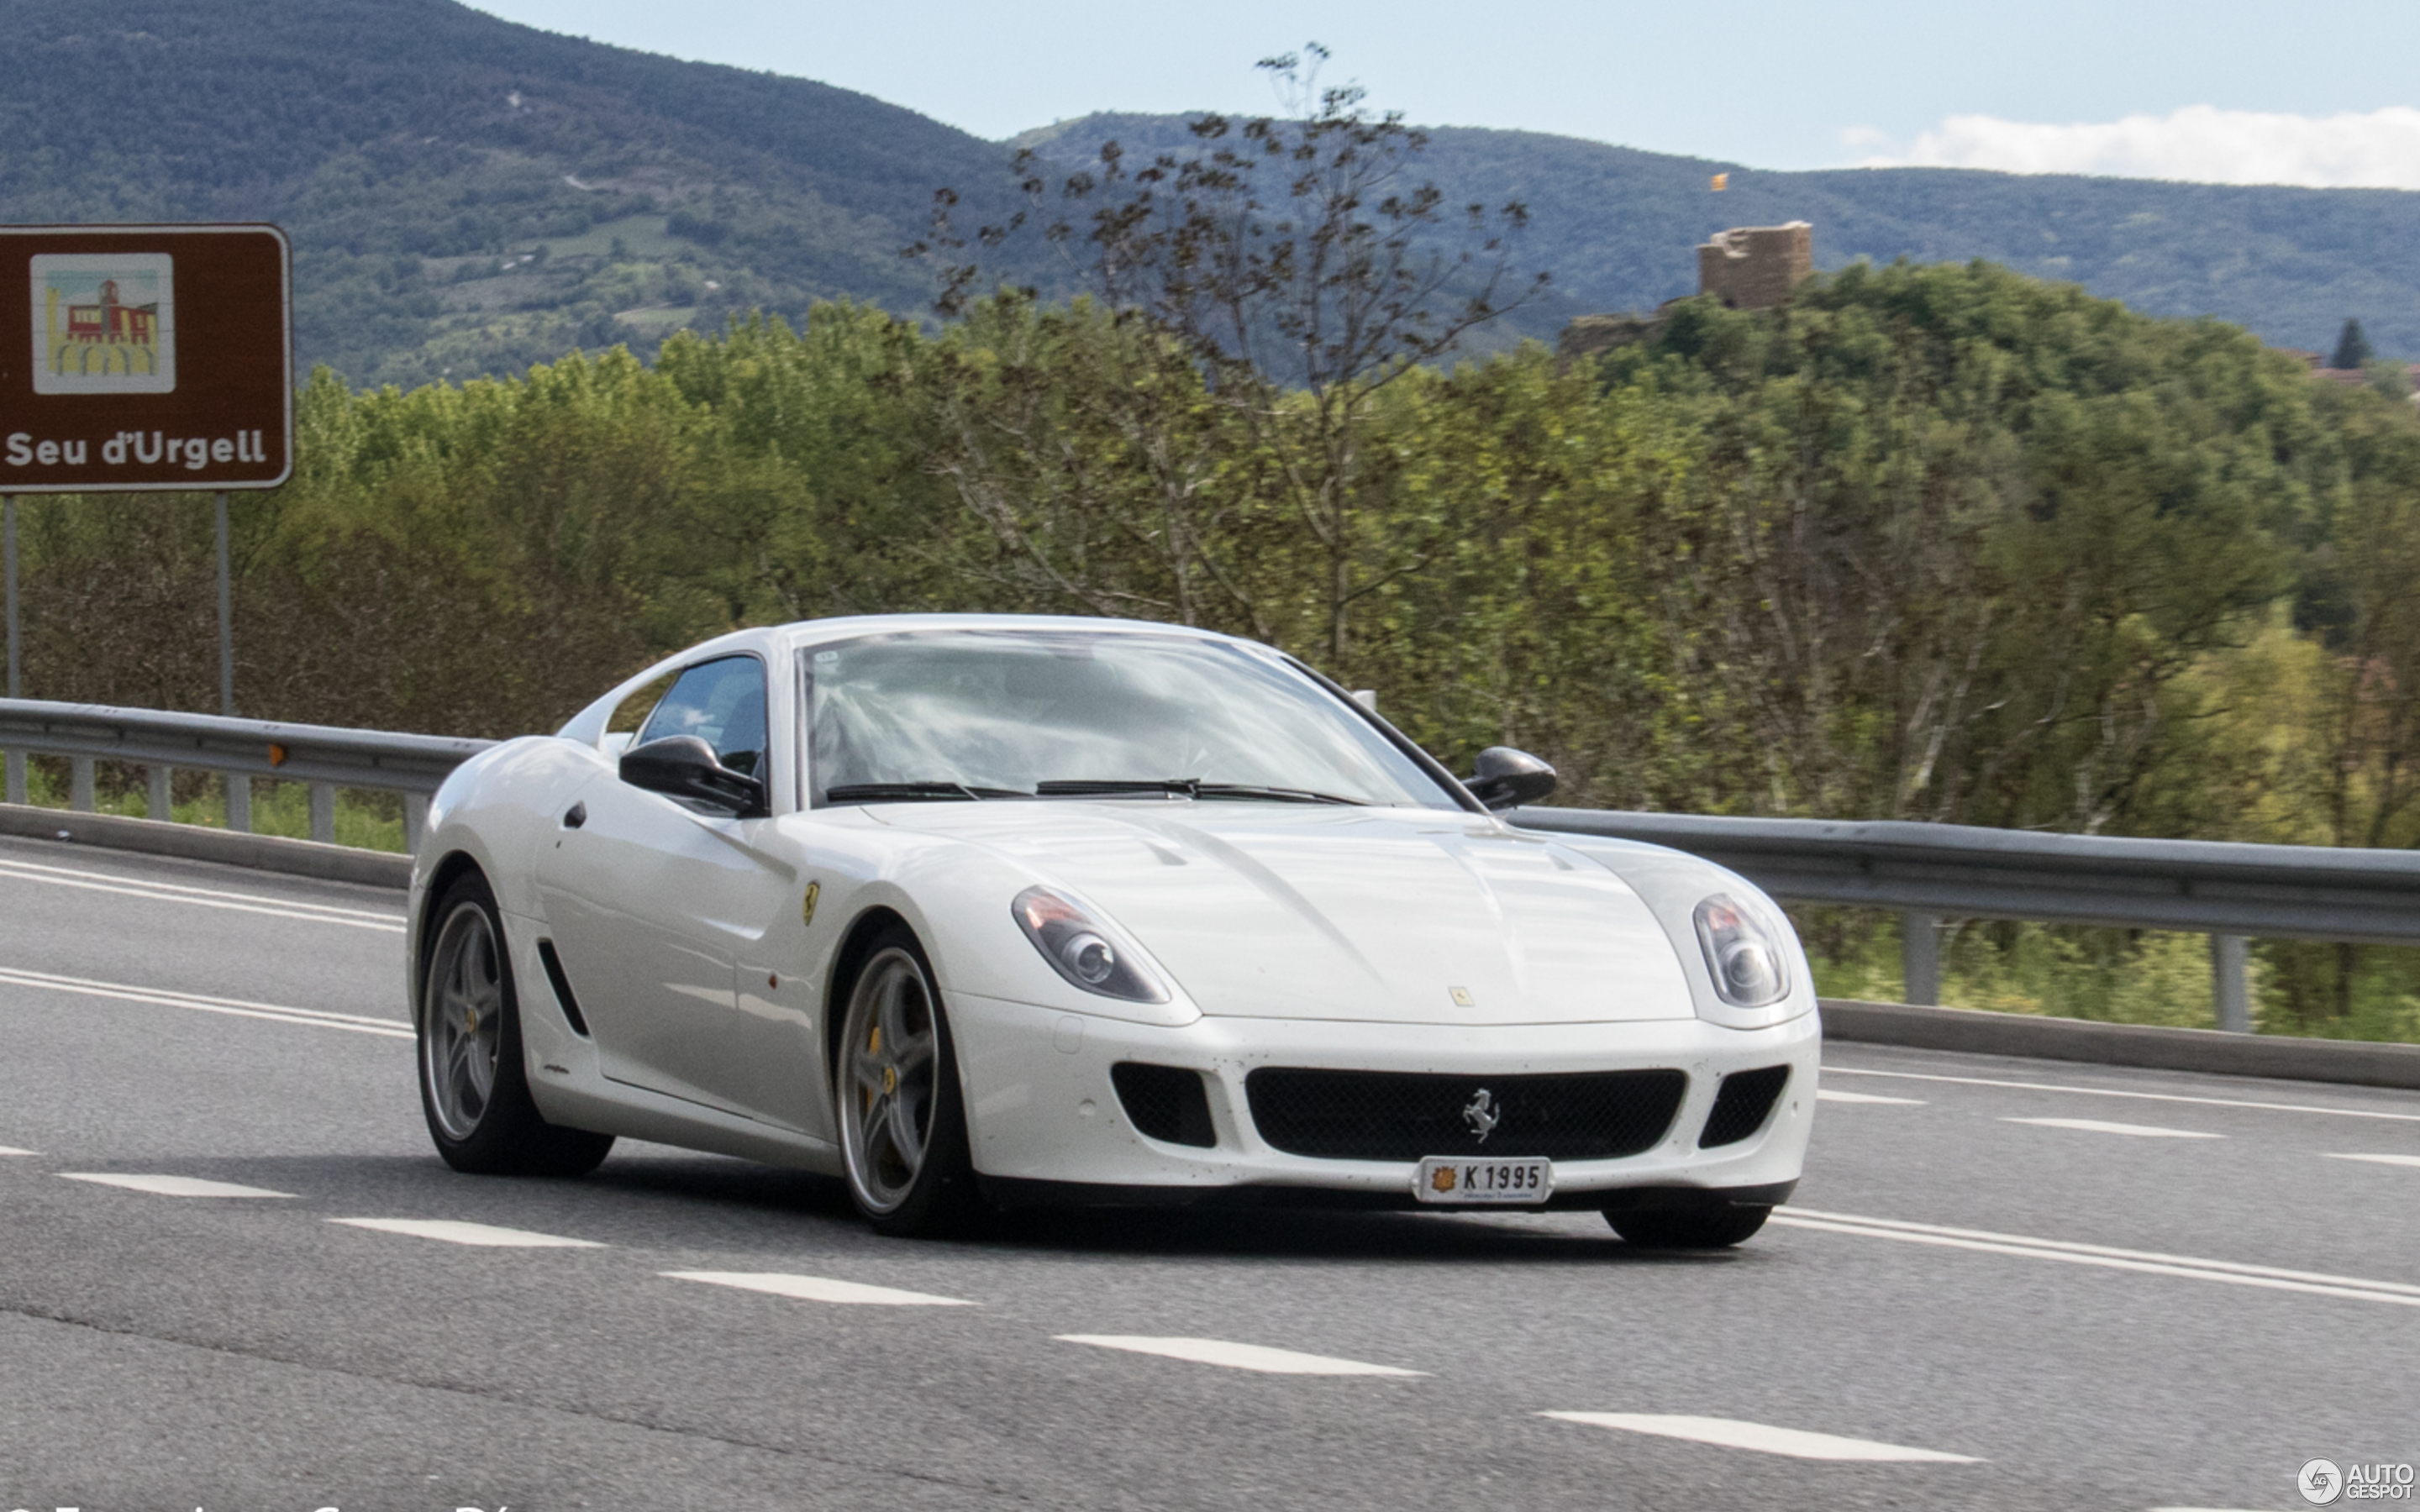 gve gallery vehicles for image luxury ferrari owned london fiorano sale gtb pre